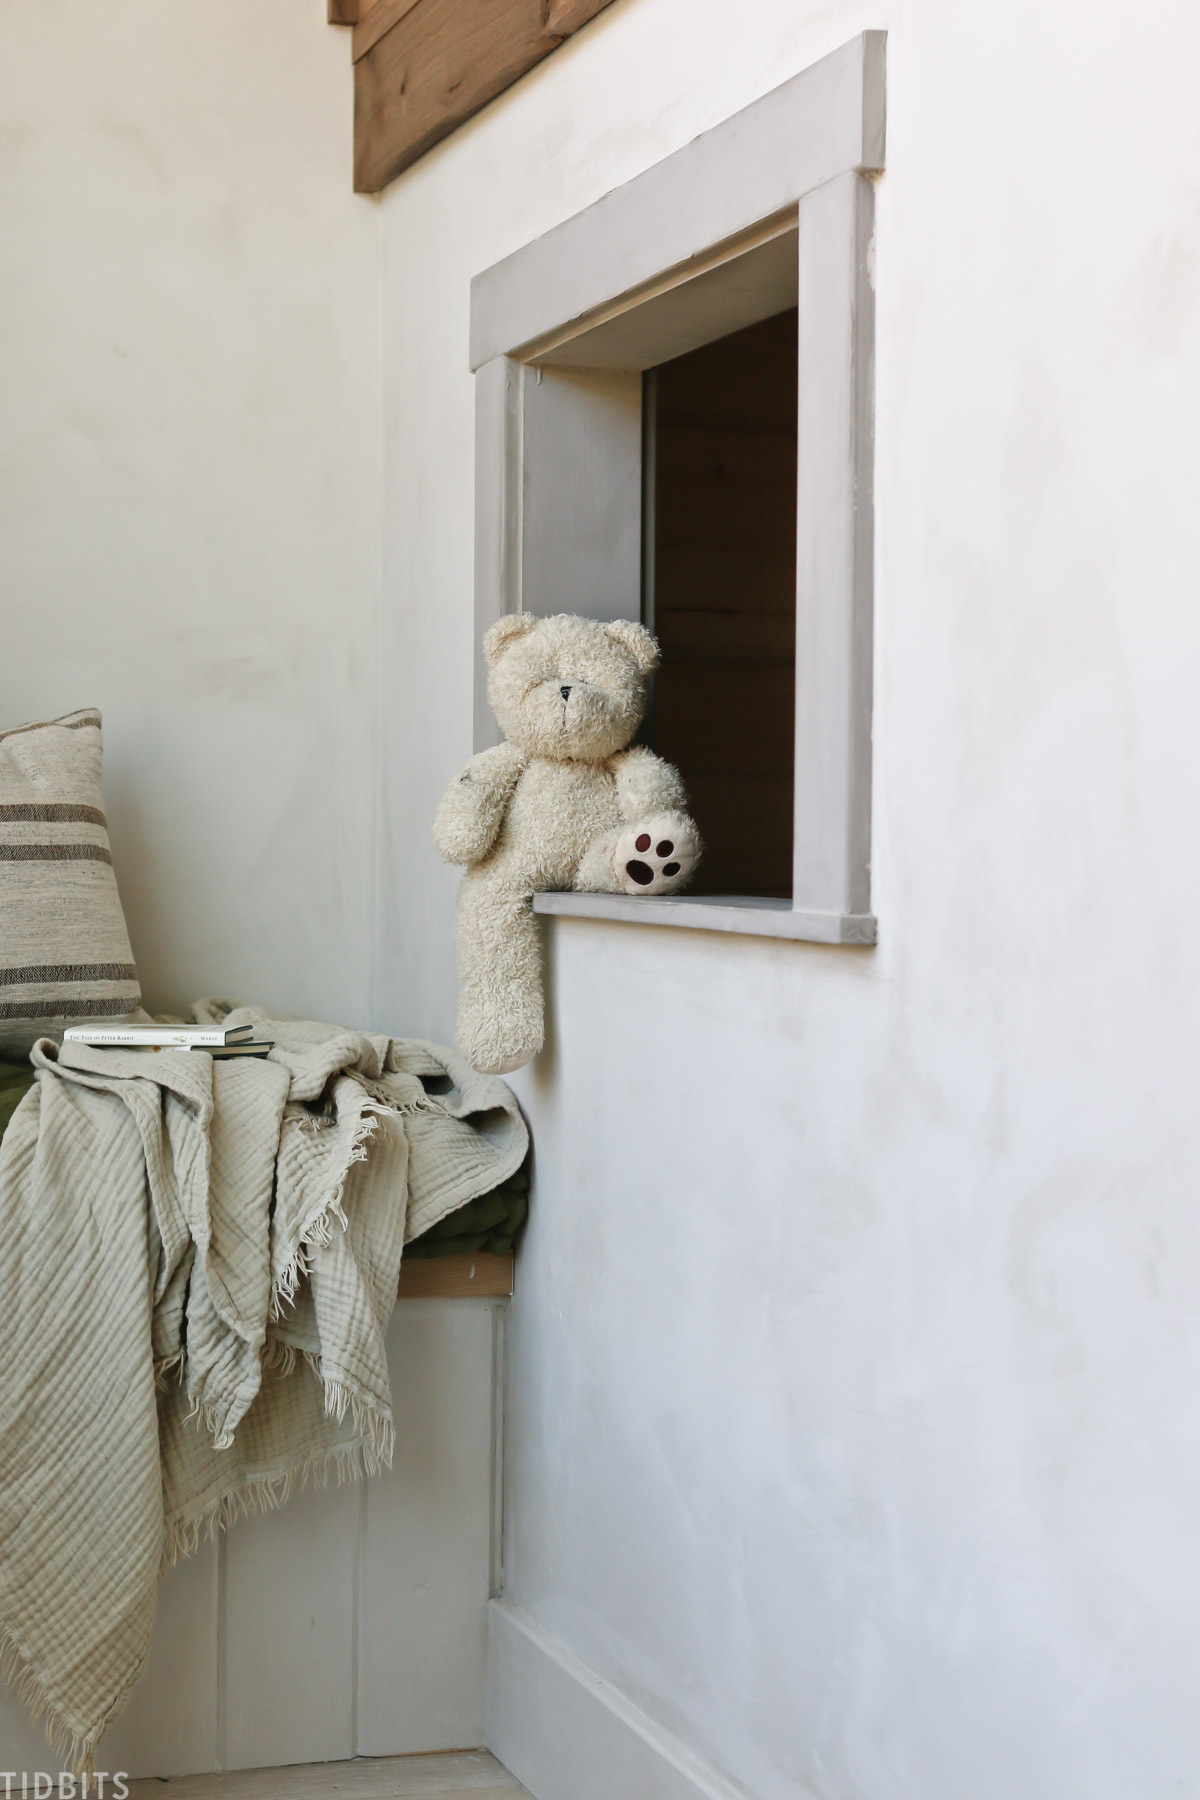 teddy bear placed on cut out square in bedroom, which resembles an open window